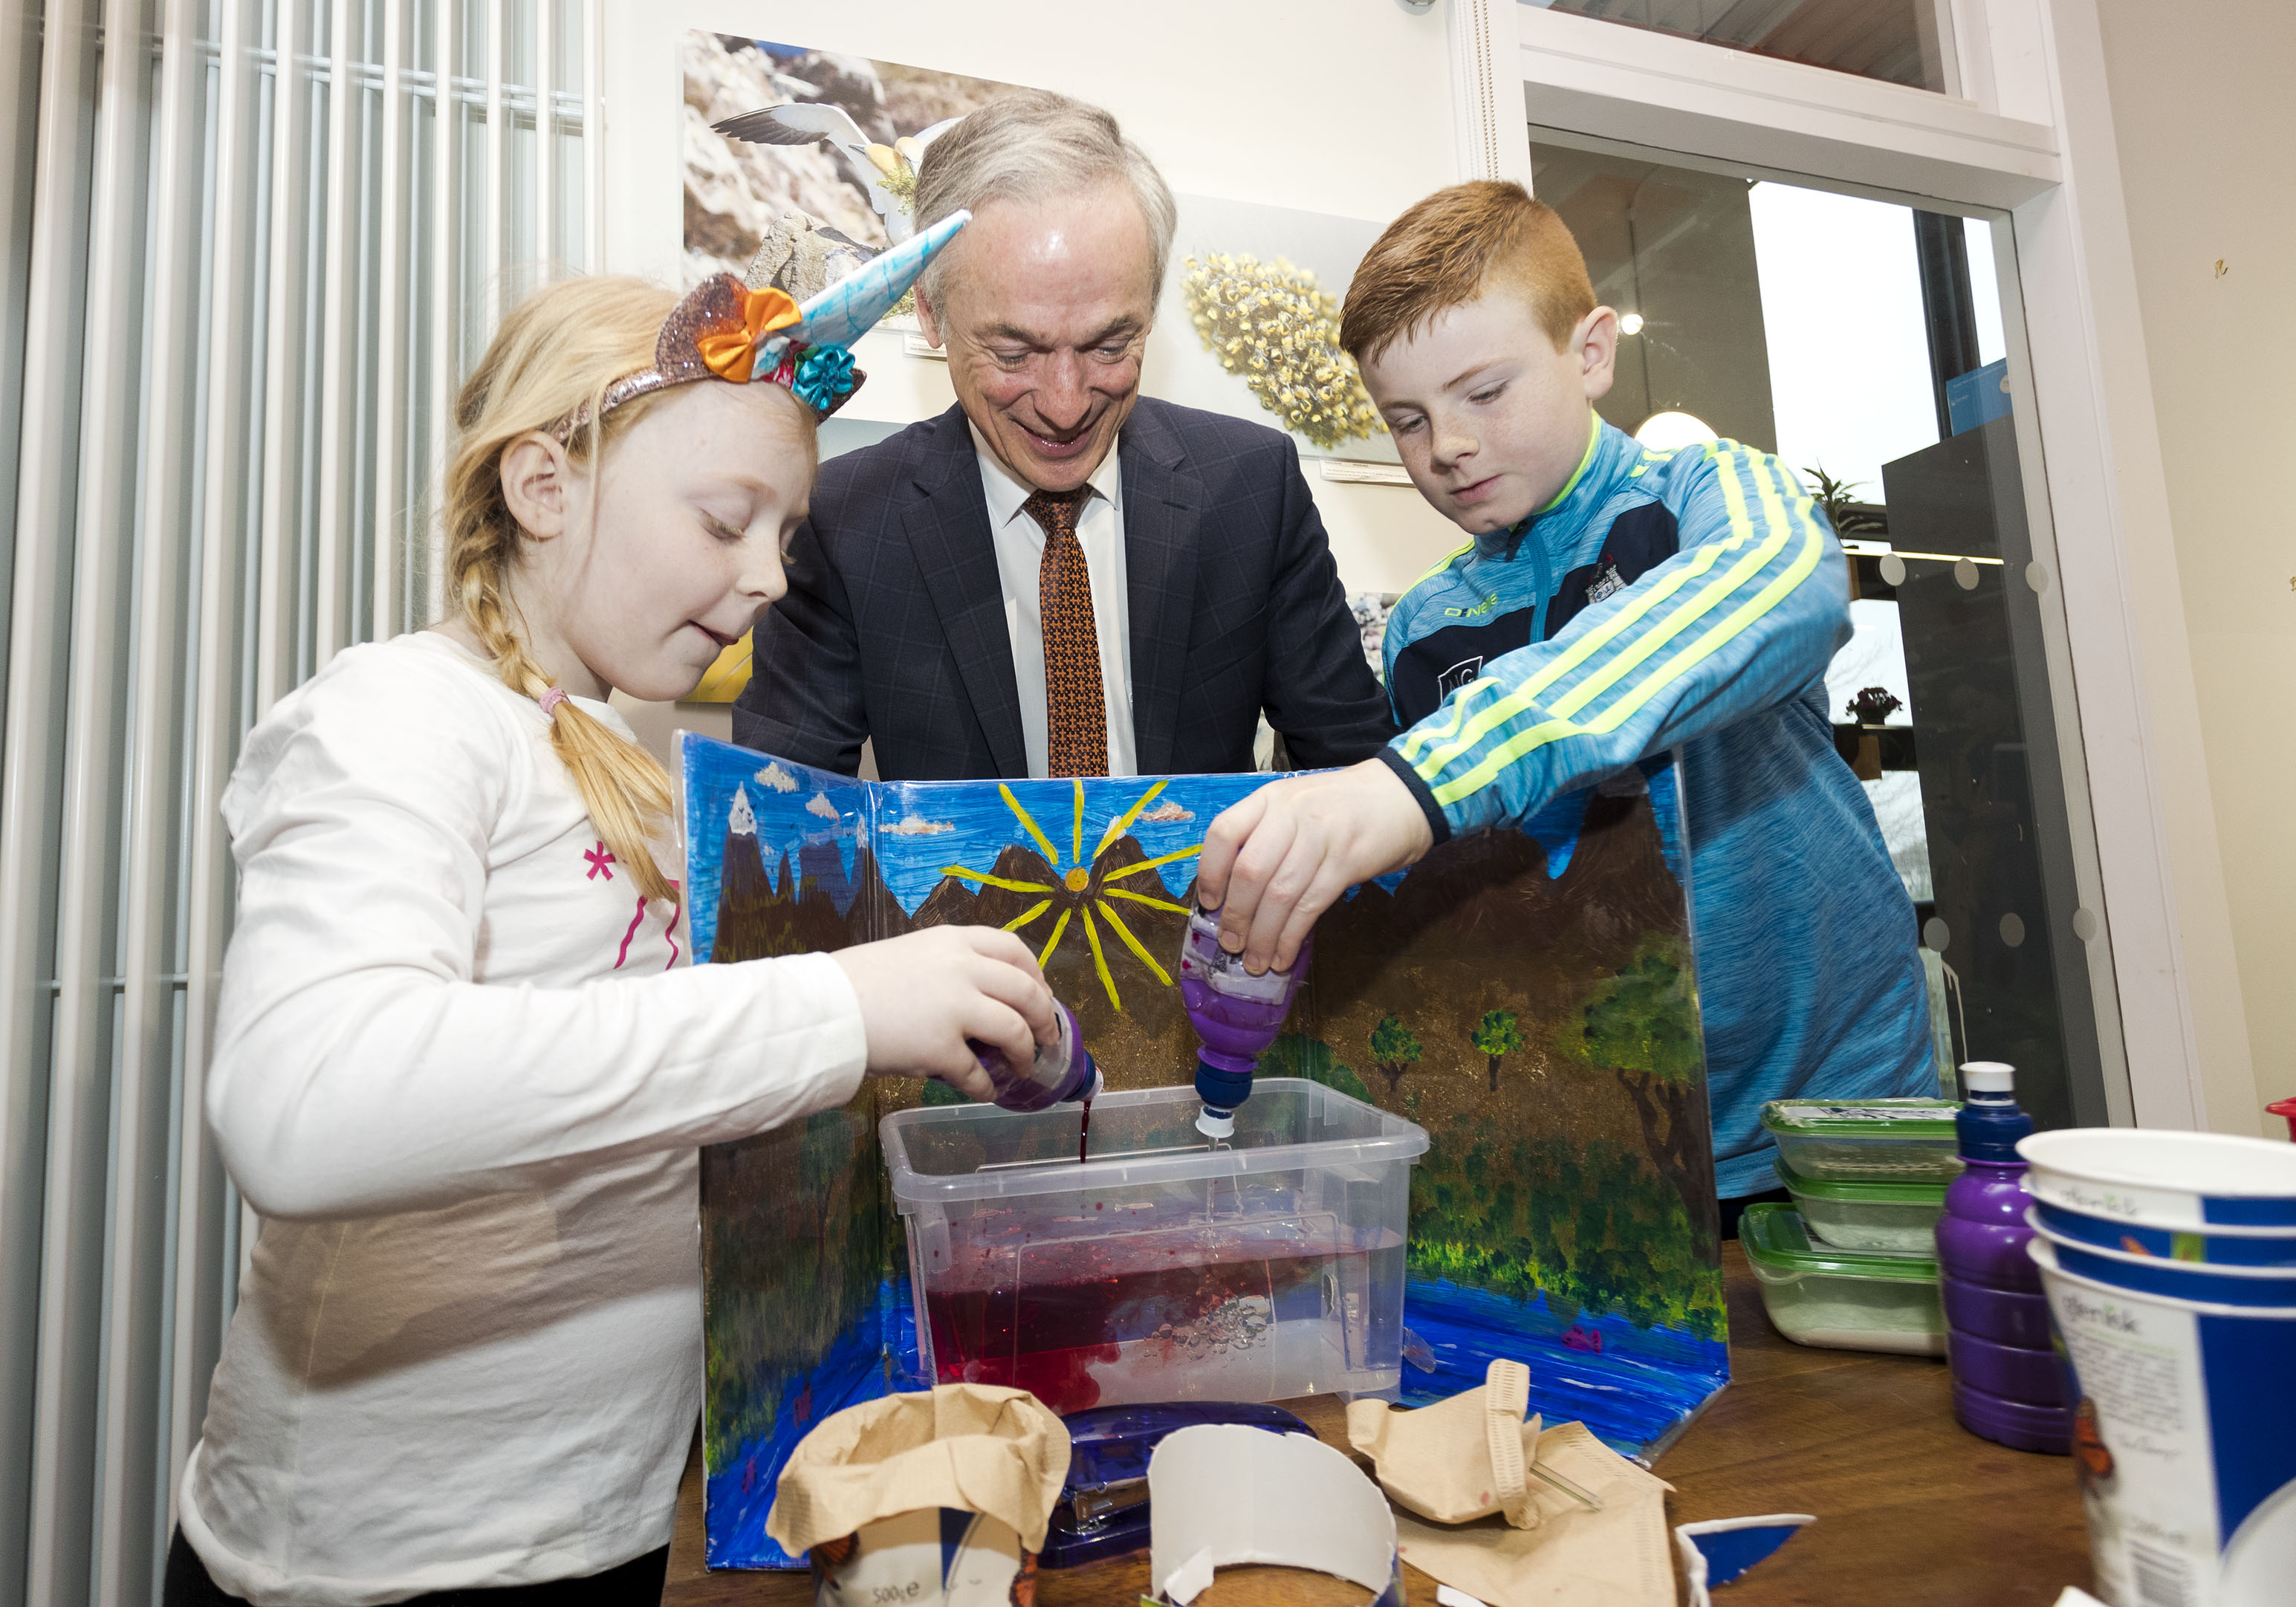 Minister Bruton Announces Government will Lead the Way in Reducing Single Use Plastics